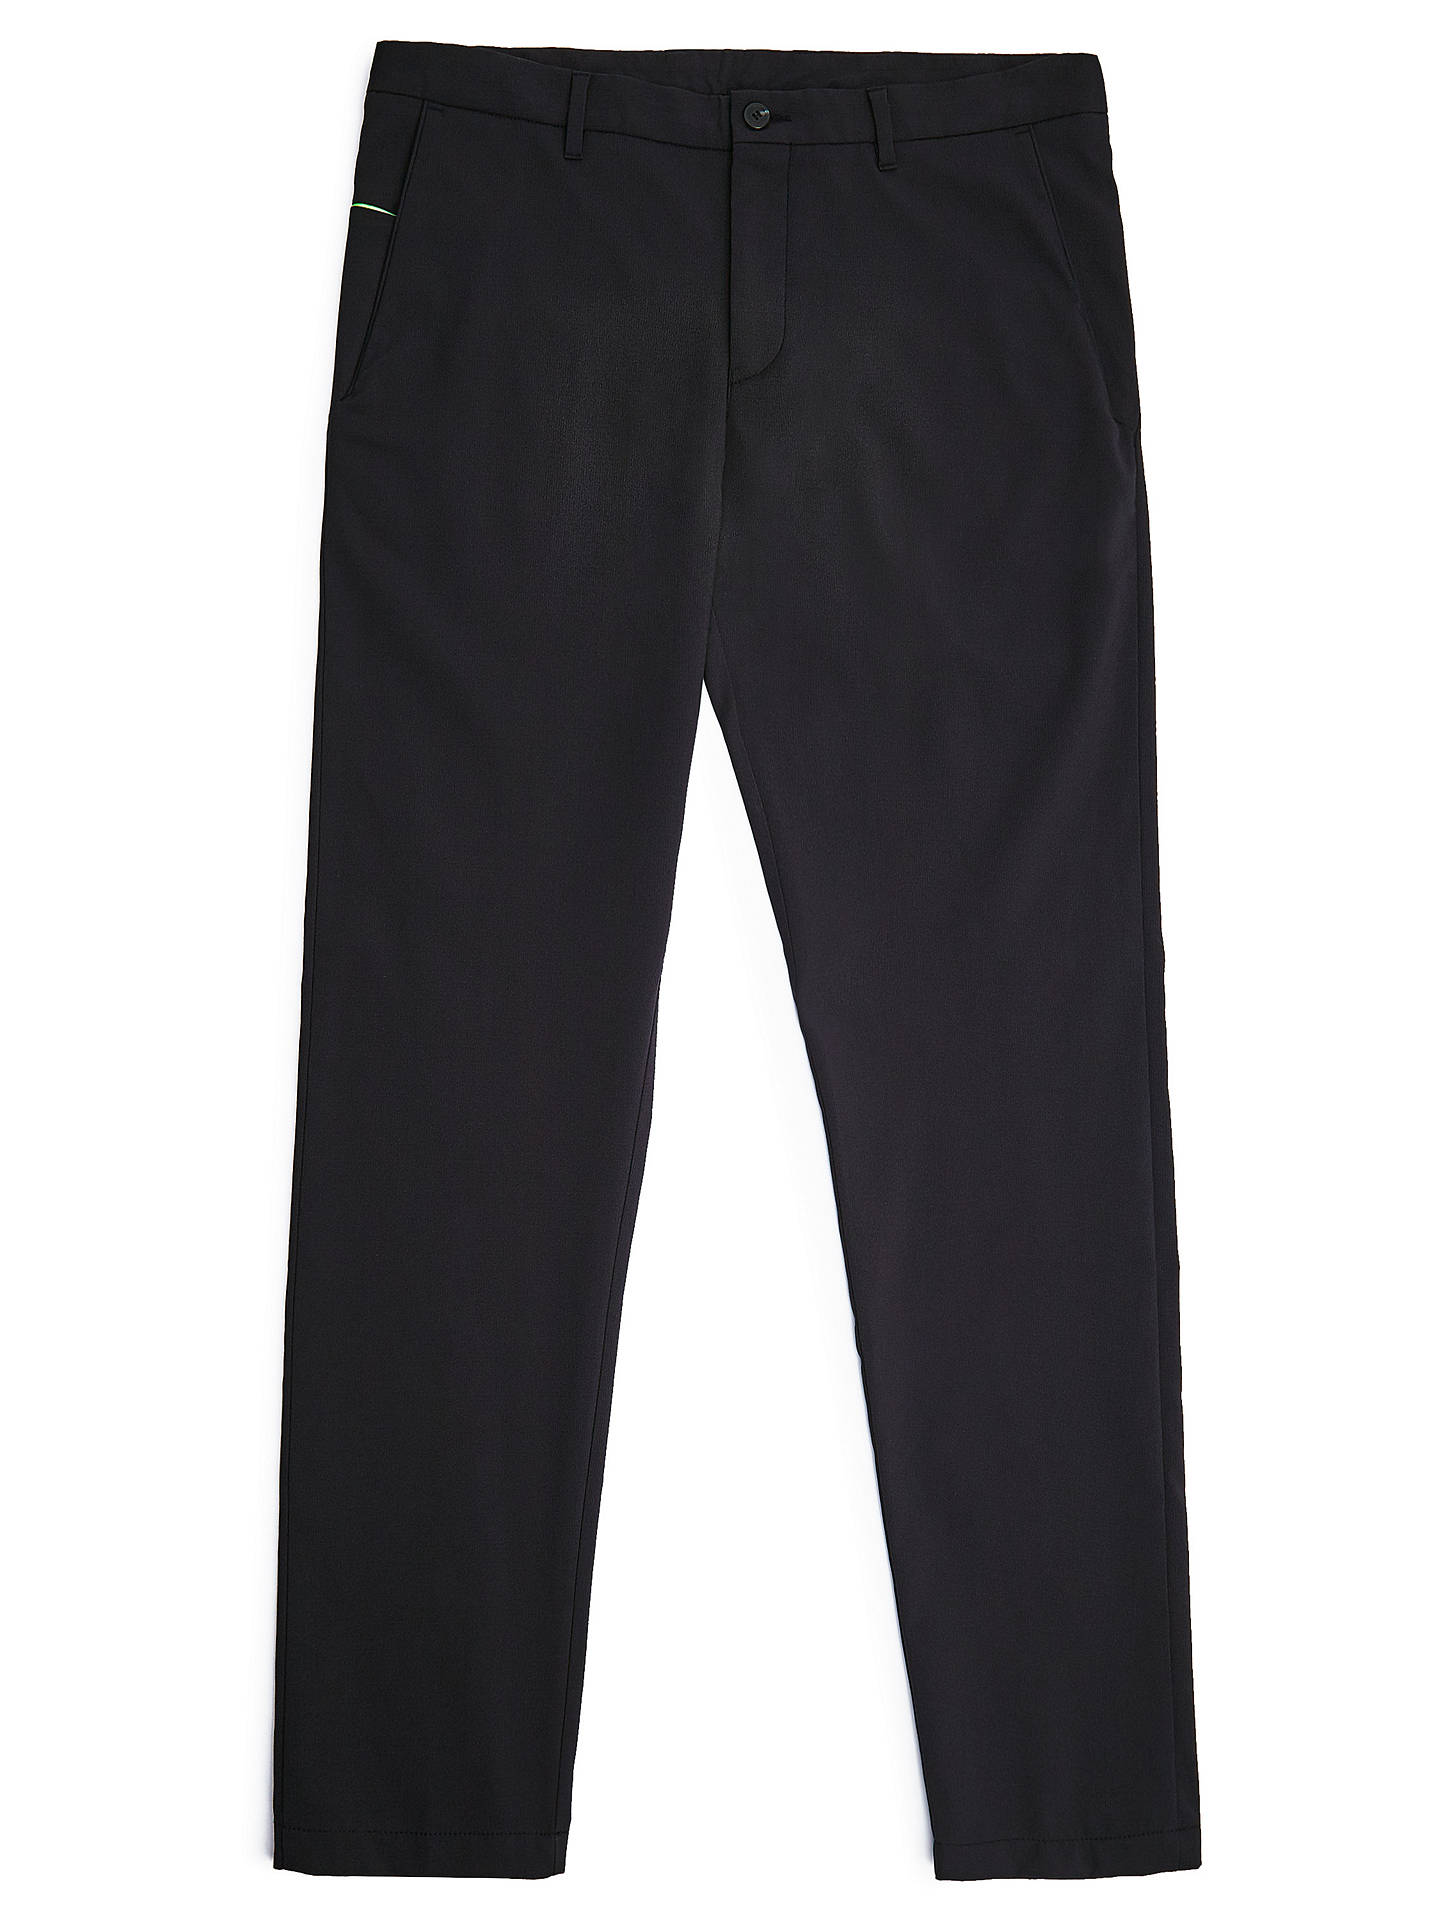 Buy BOSS Hapron Trousers, Black, 36R Online at johnlewis.com